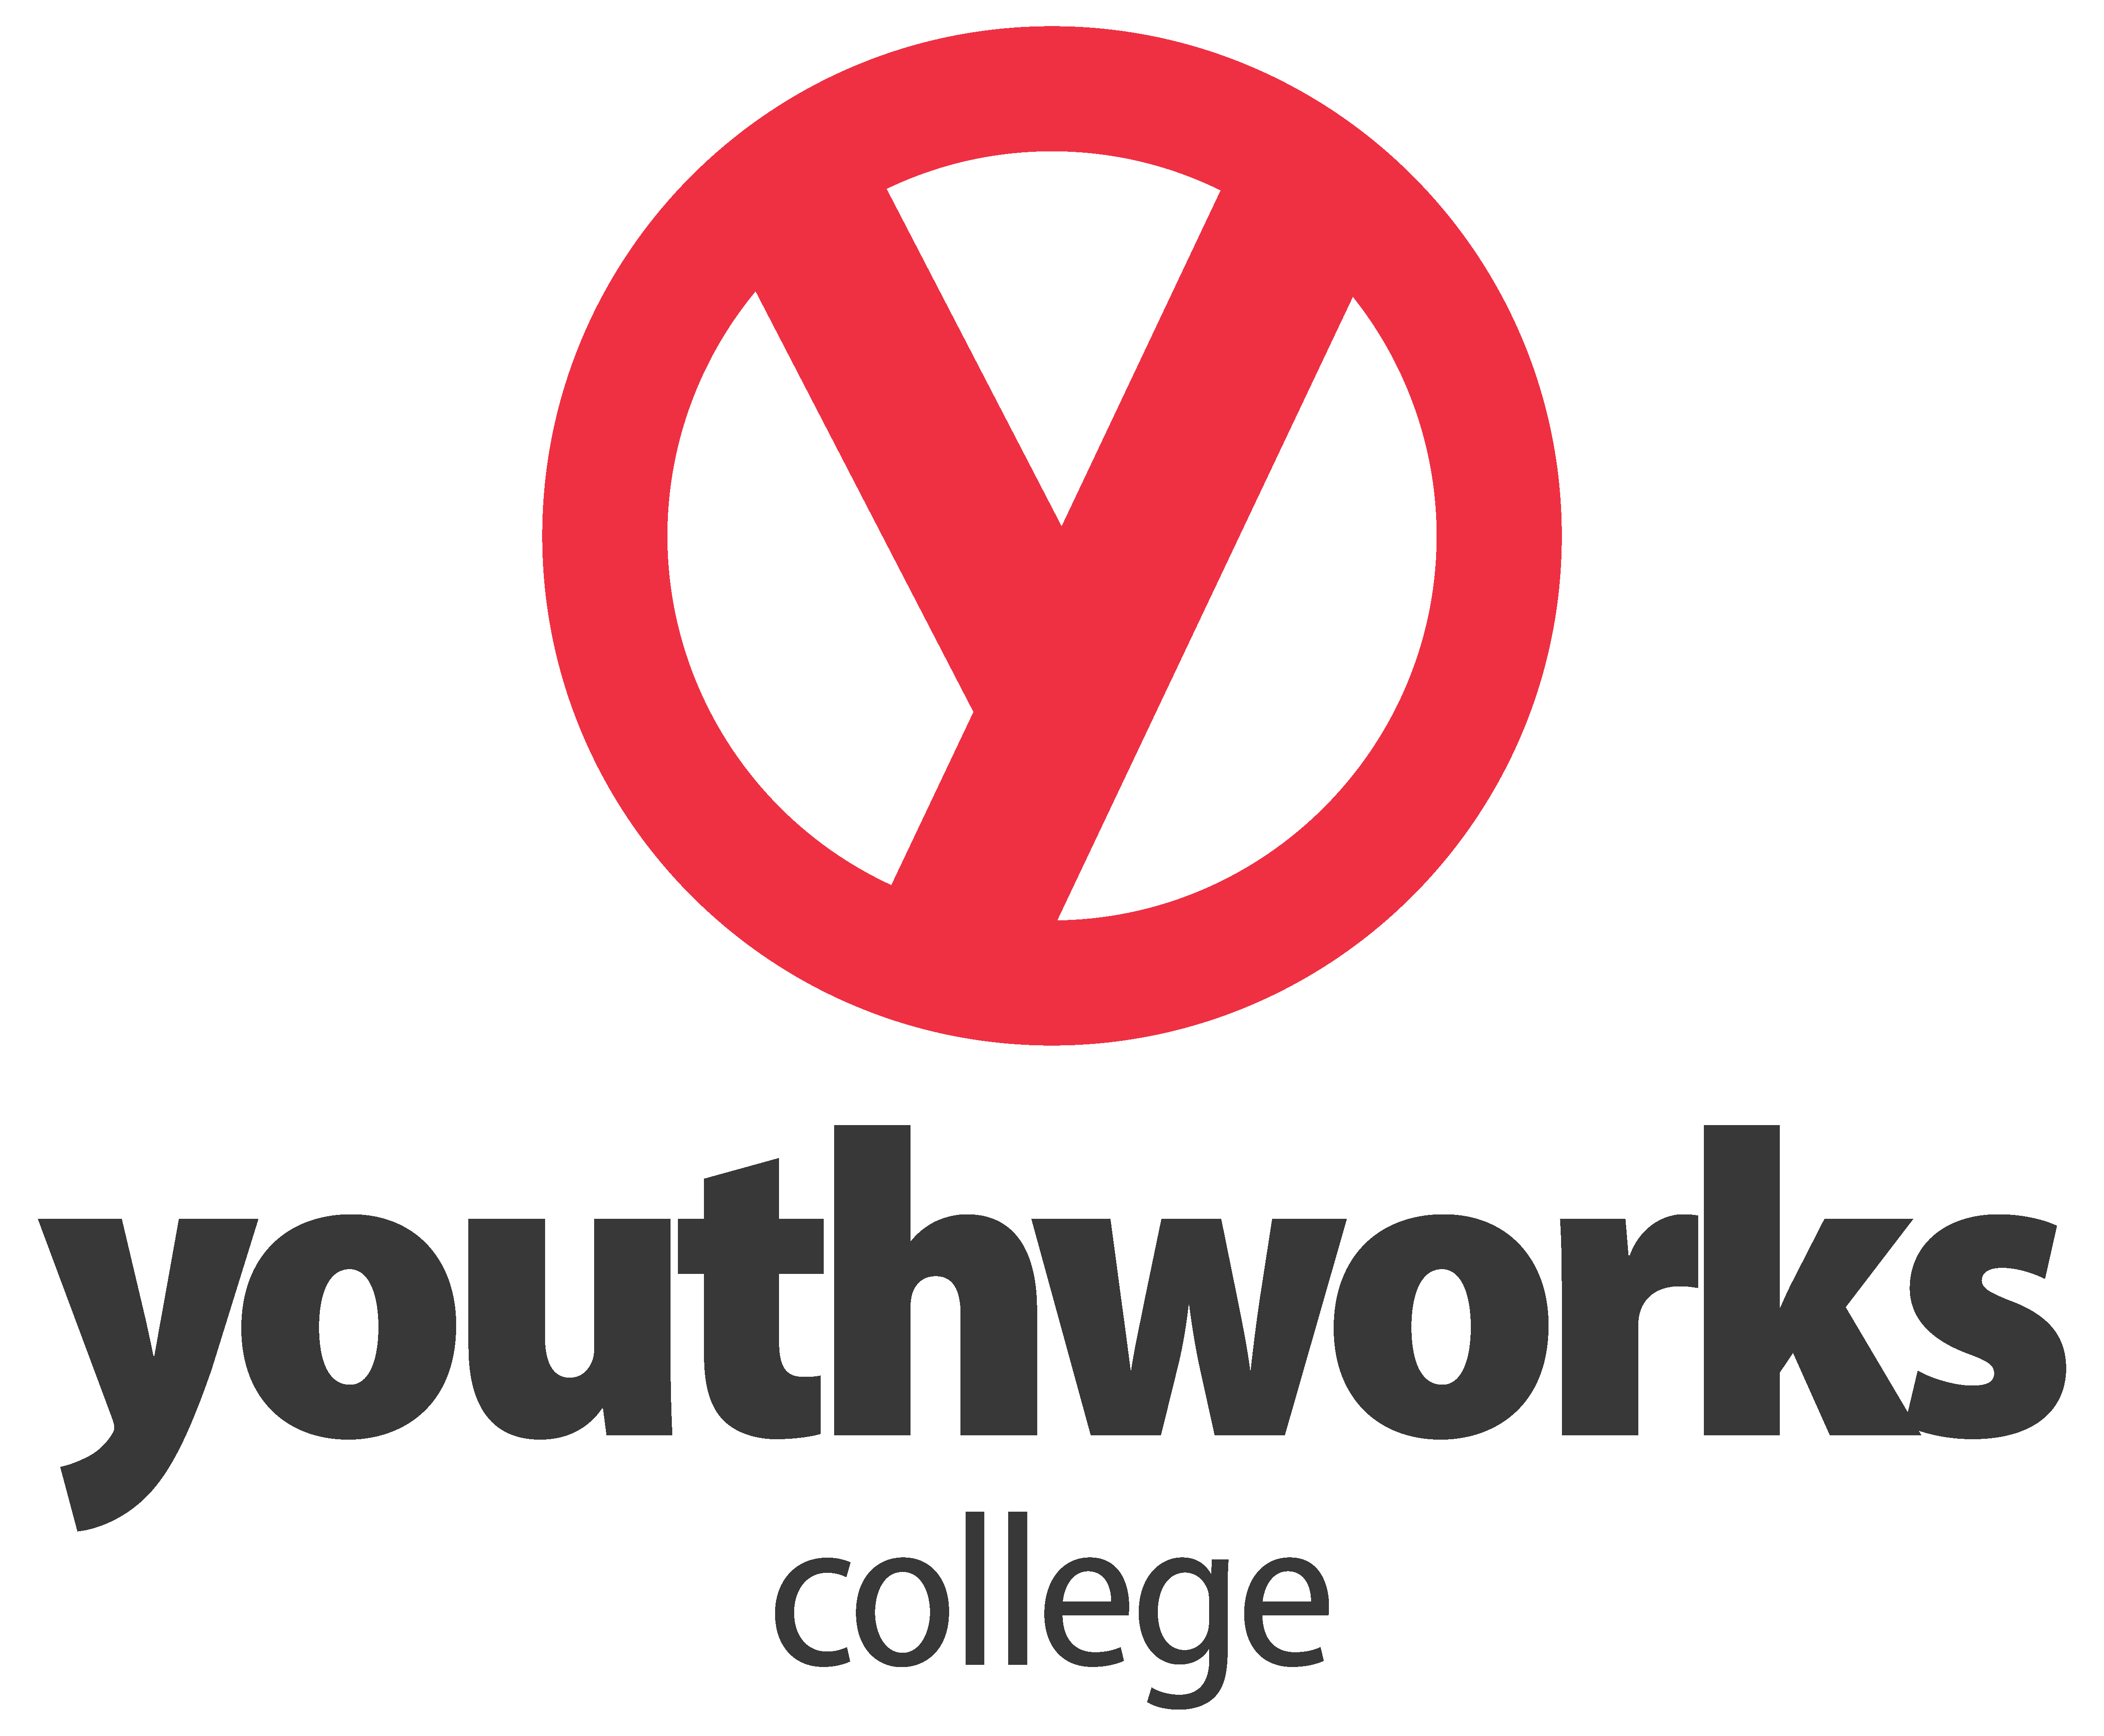 Youthworks College Stacked Standard